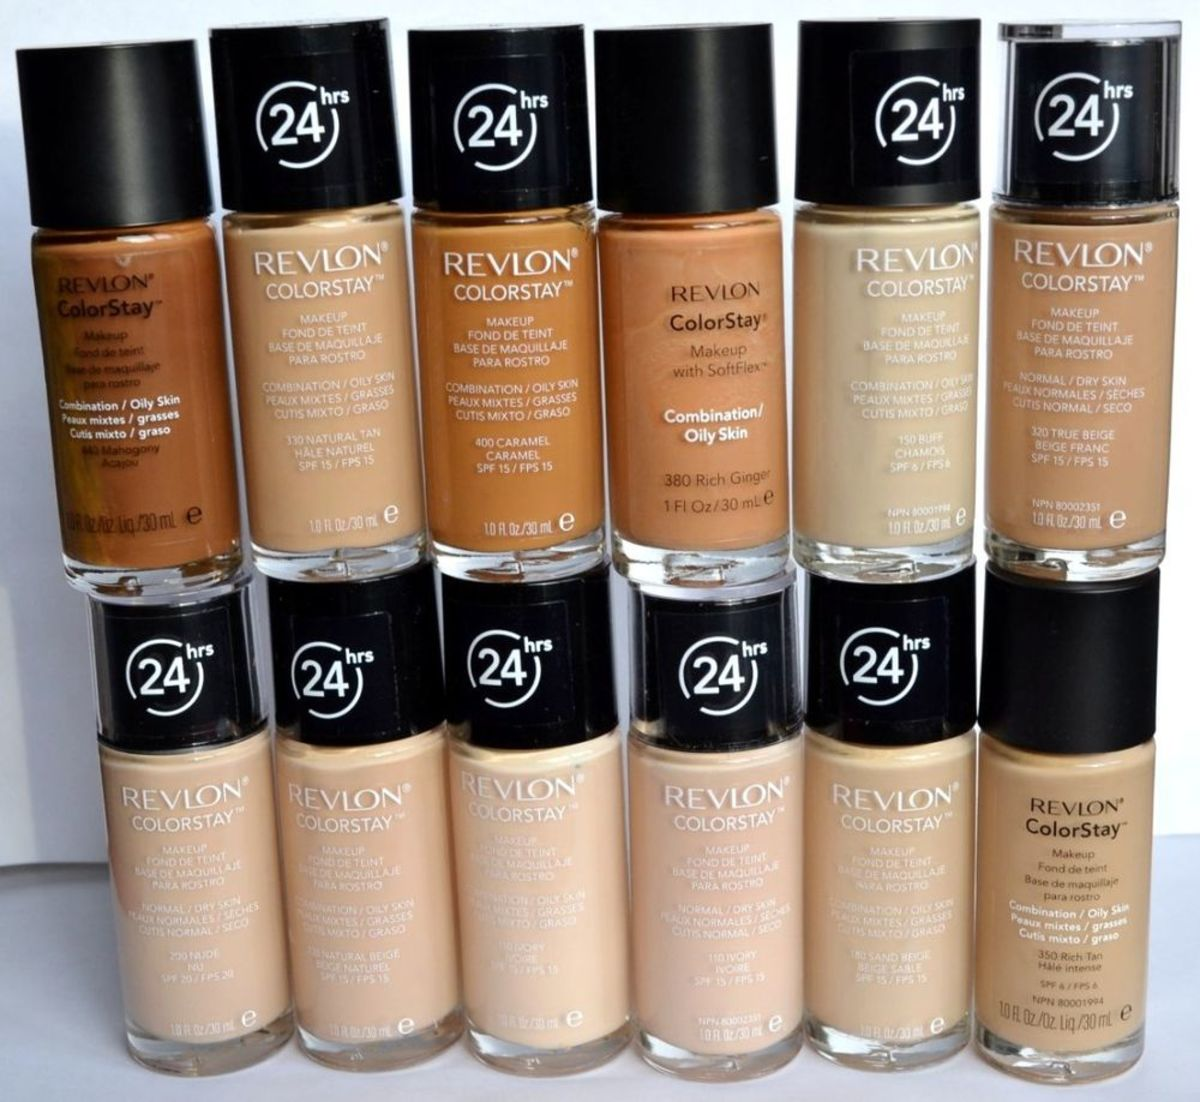 Revlon ColorStay products. Learn more about this foundation, which I found ideal for oily and acne-prone skin.